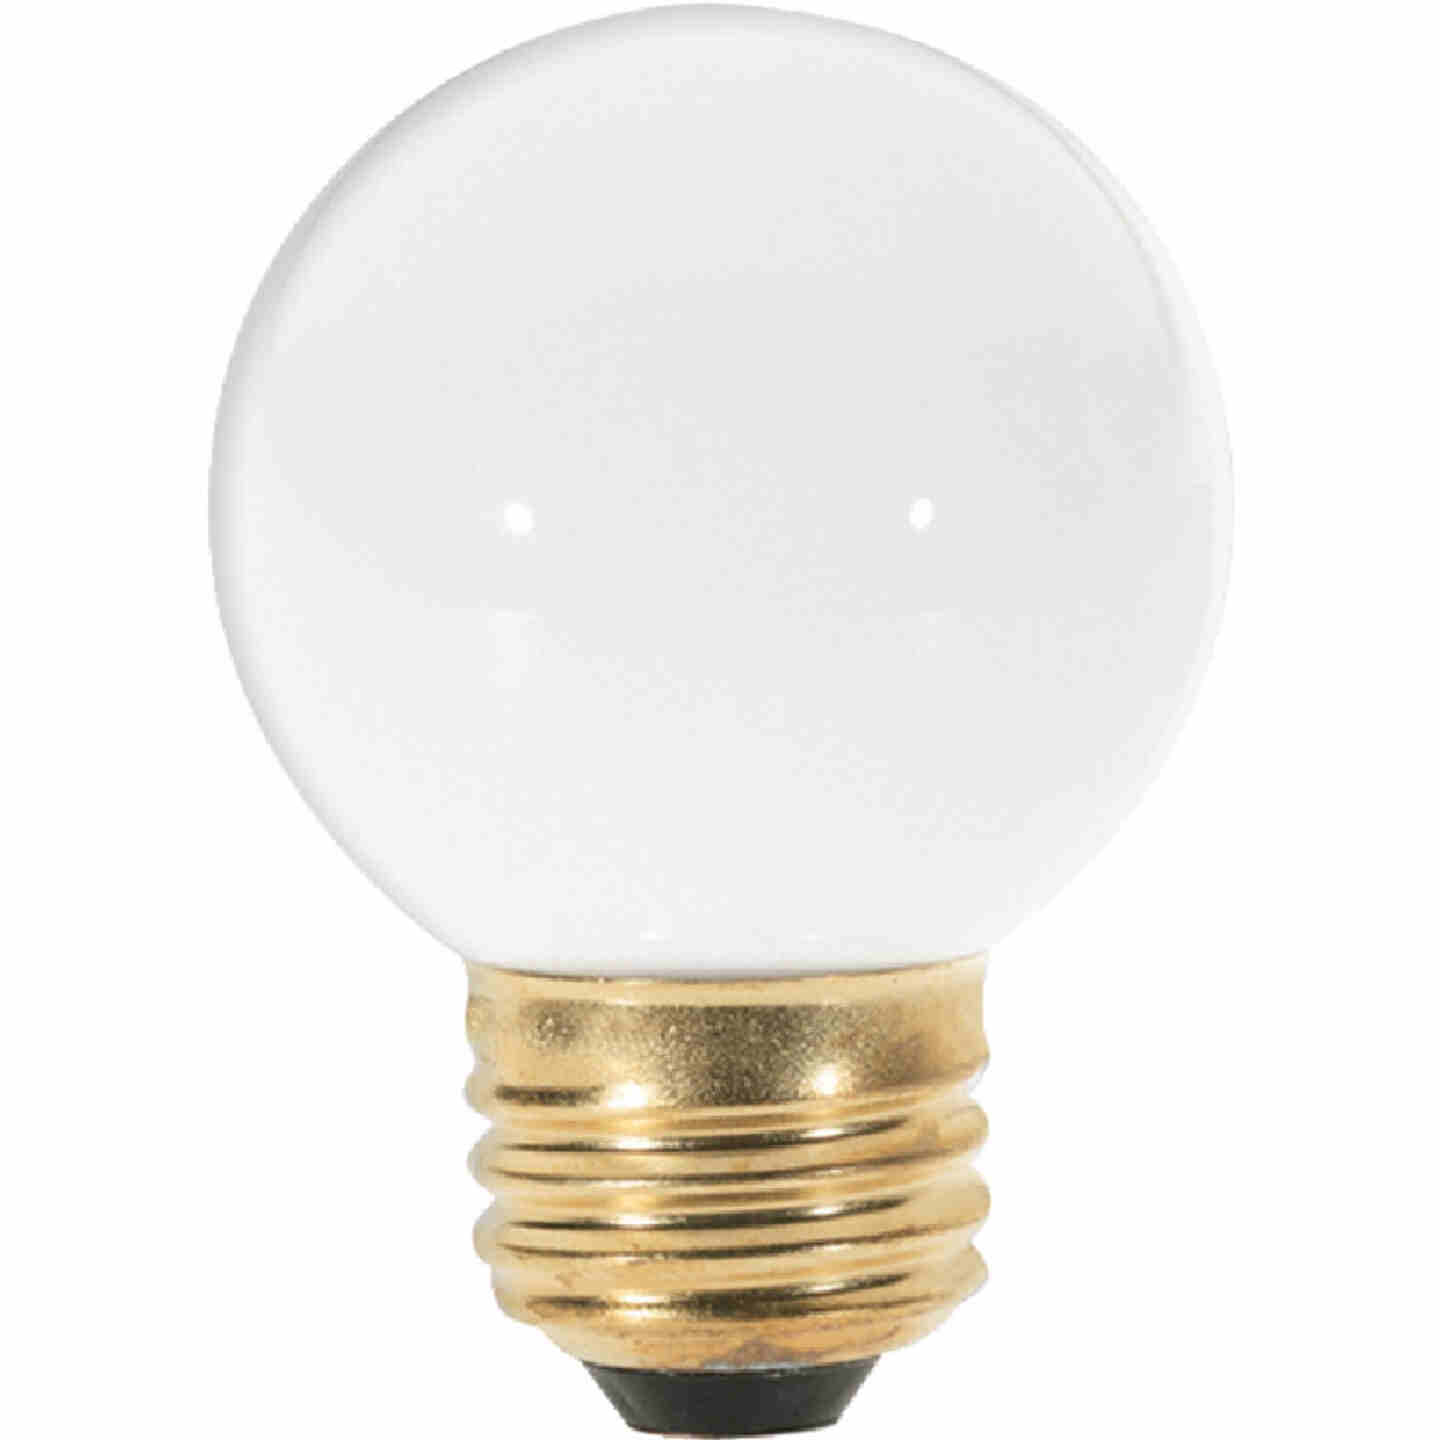 Satco 25W Frosted Medium G16.5 Incandescent Globe Light Bulb Image 1